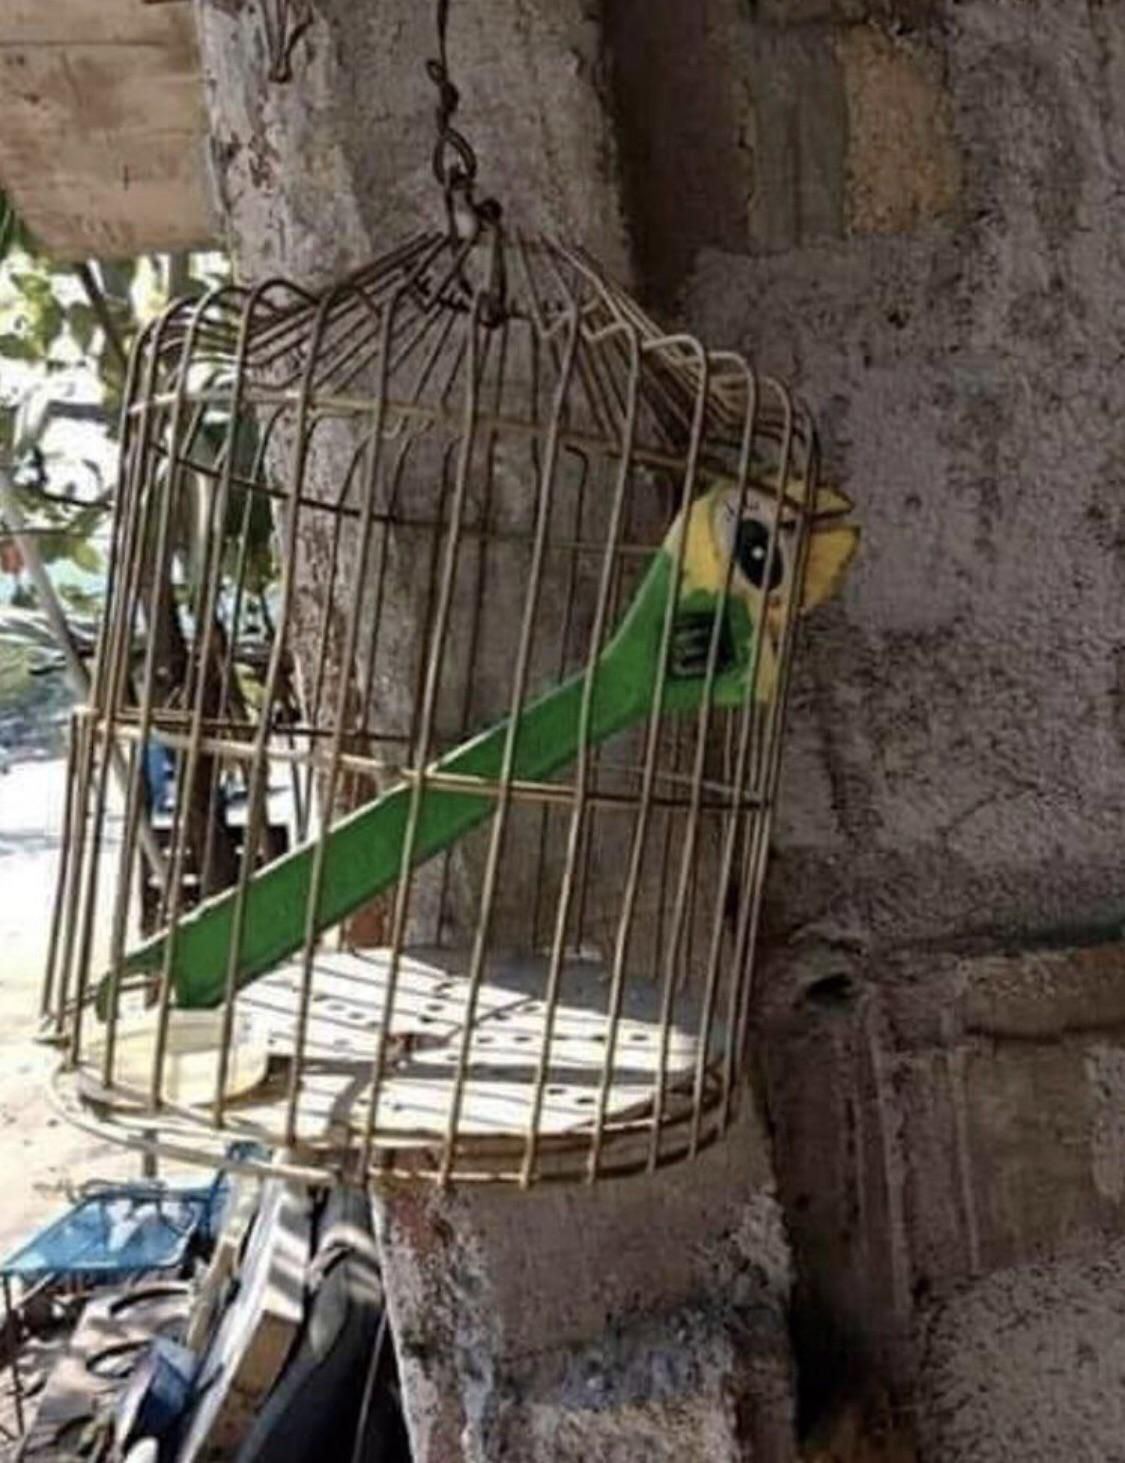 Nice parrot bro, where'd you get it?